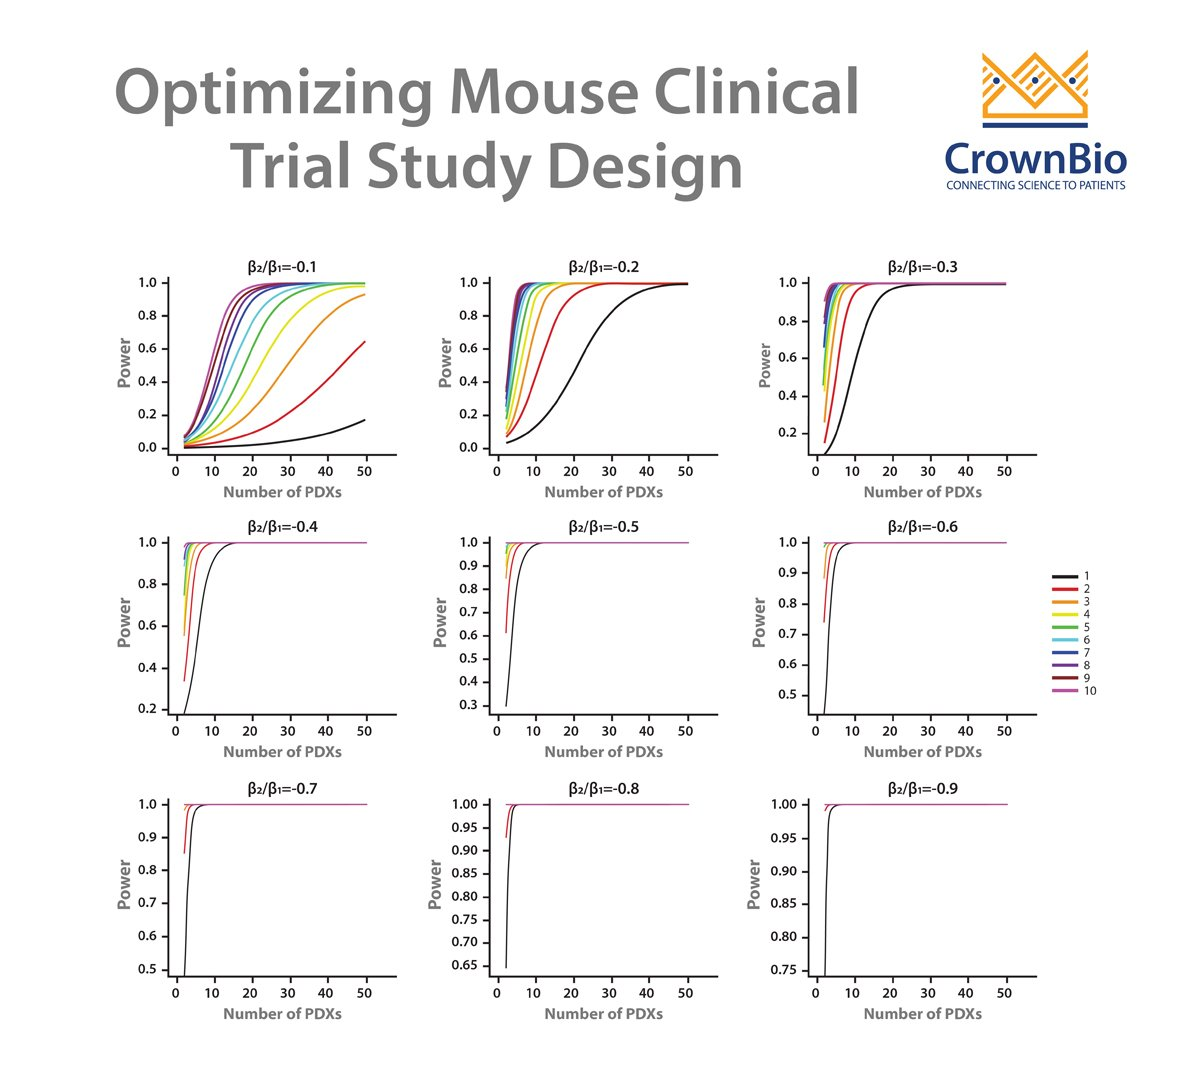 How to Optimize Mouse Clinical Trial Study Design